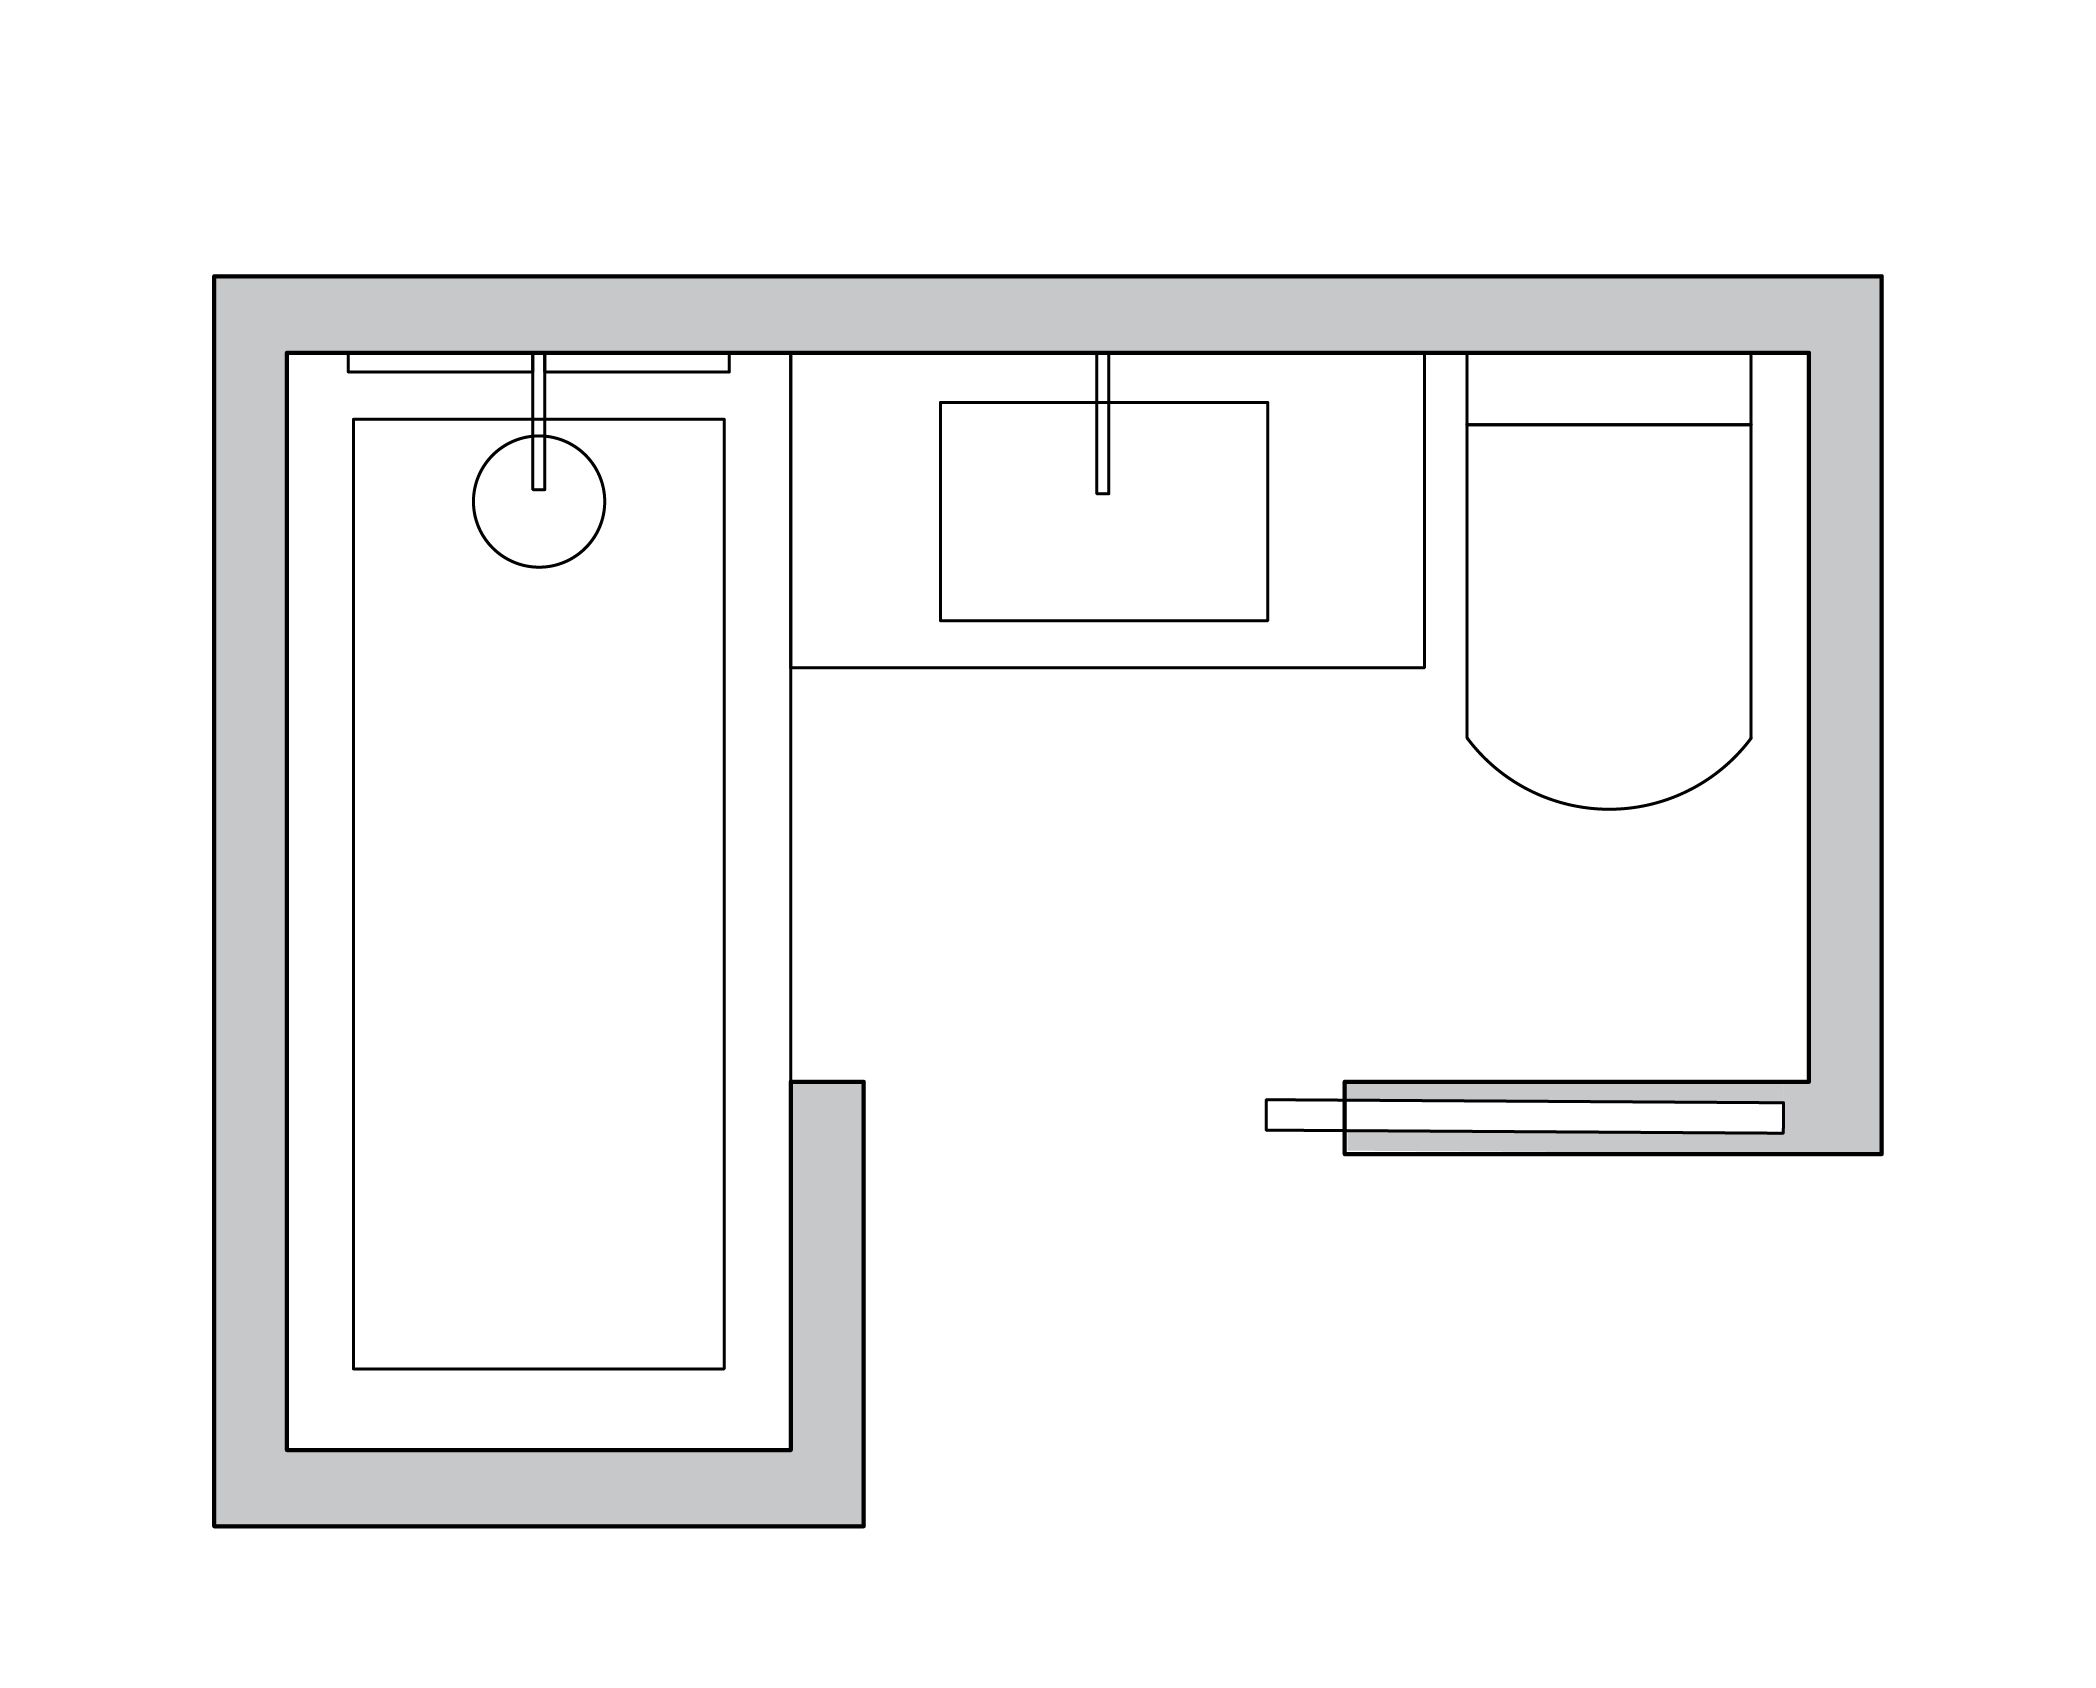 Small Bathroom Layout Ideas From an Architect to Optimize Space ...